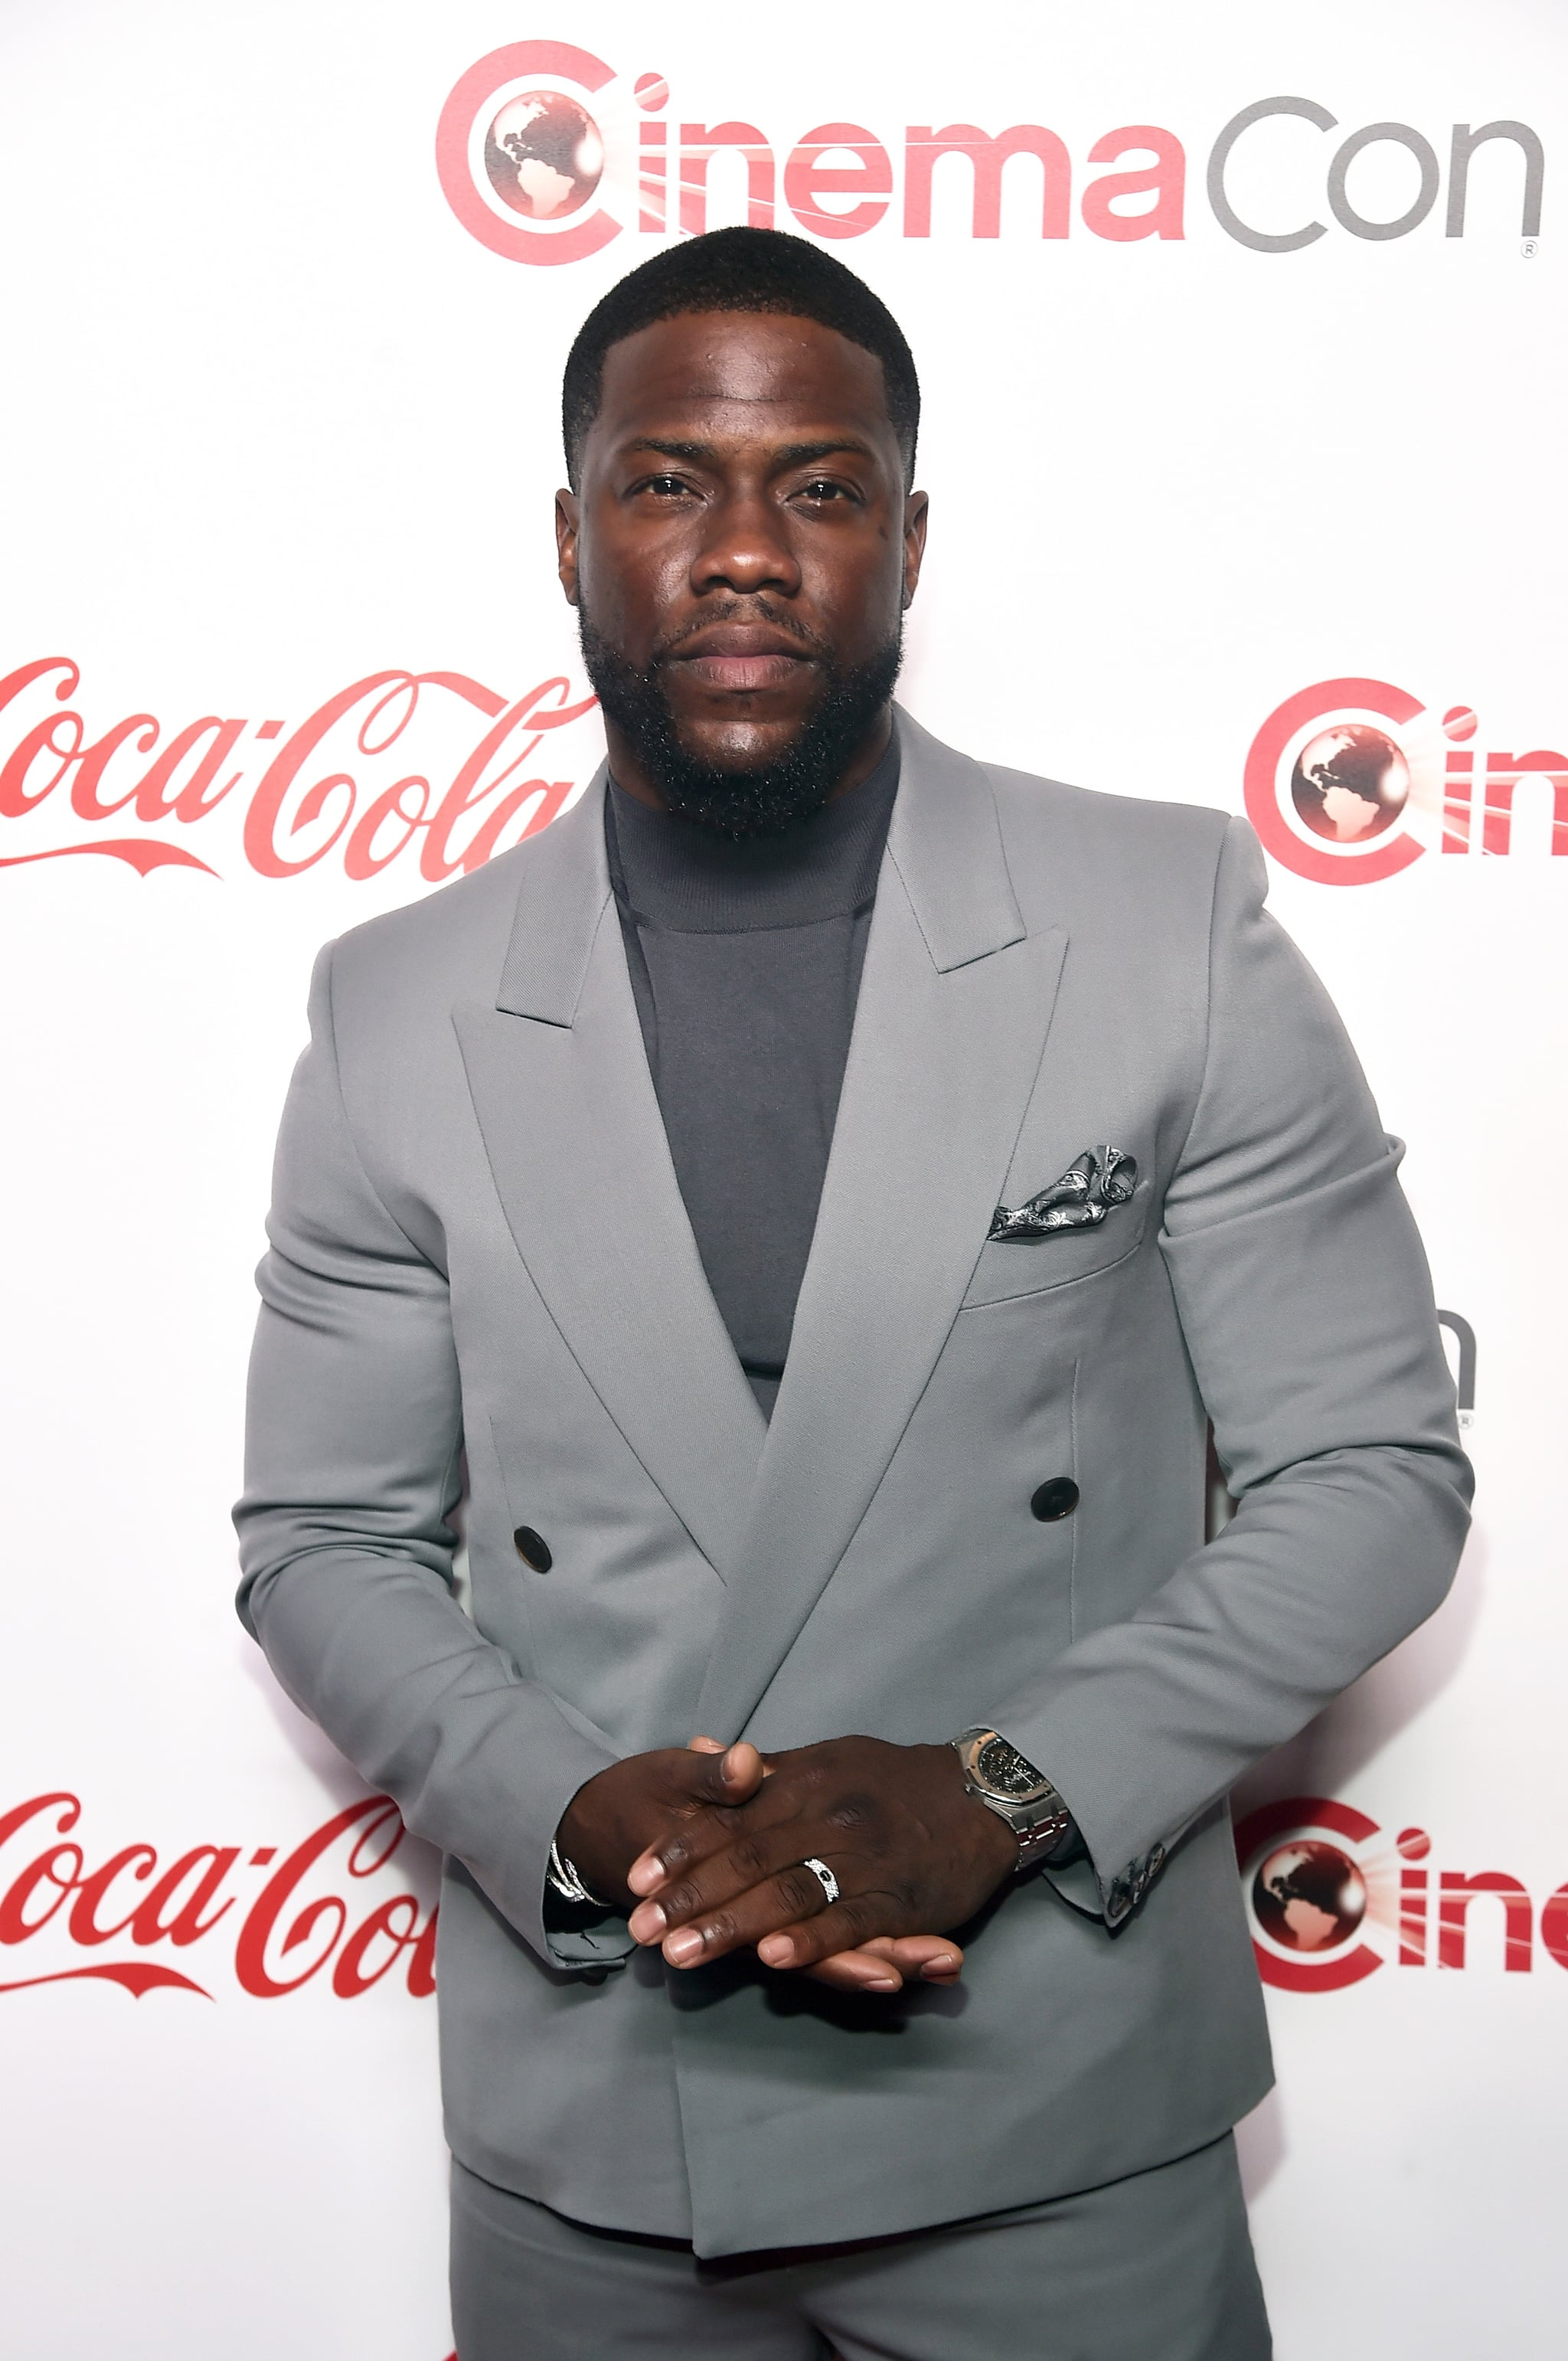 LAS VEGAS, NV - APRIL 04:  Kevin Hart attends The CinemaCon Big Screen Achievement Awards Brought to you by The Coca-Cola Company at OMNIA Nightclub at Caesars Palace during CinemaCon, the official convention of the National Association of Theatre Owners, on April 4, 2019 in Las Vegas, Nevada.  (Photo by Alberto E. Rodriguez/Getty Images for CinemaCon)